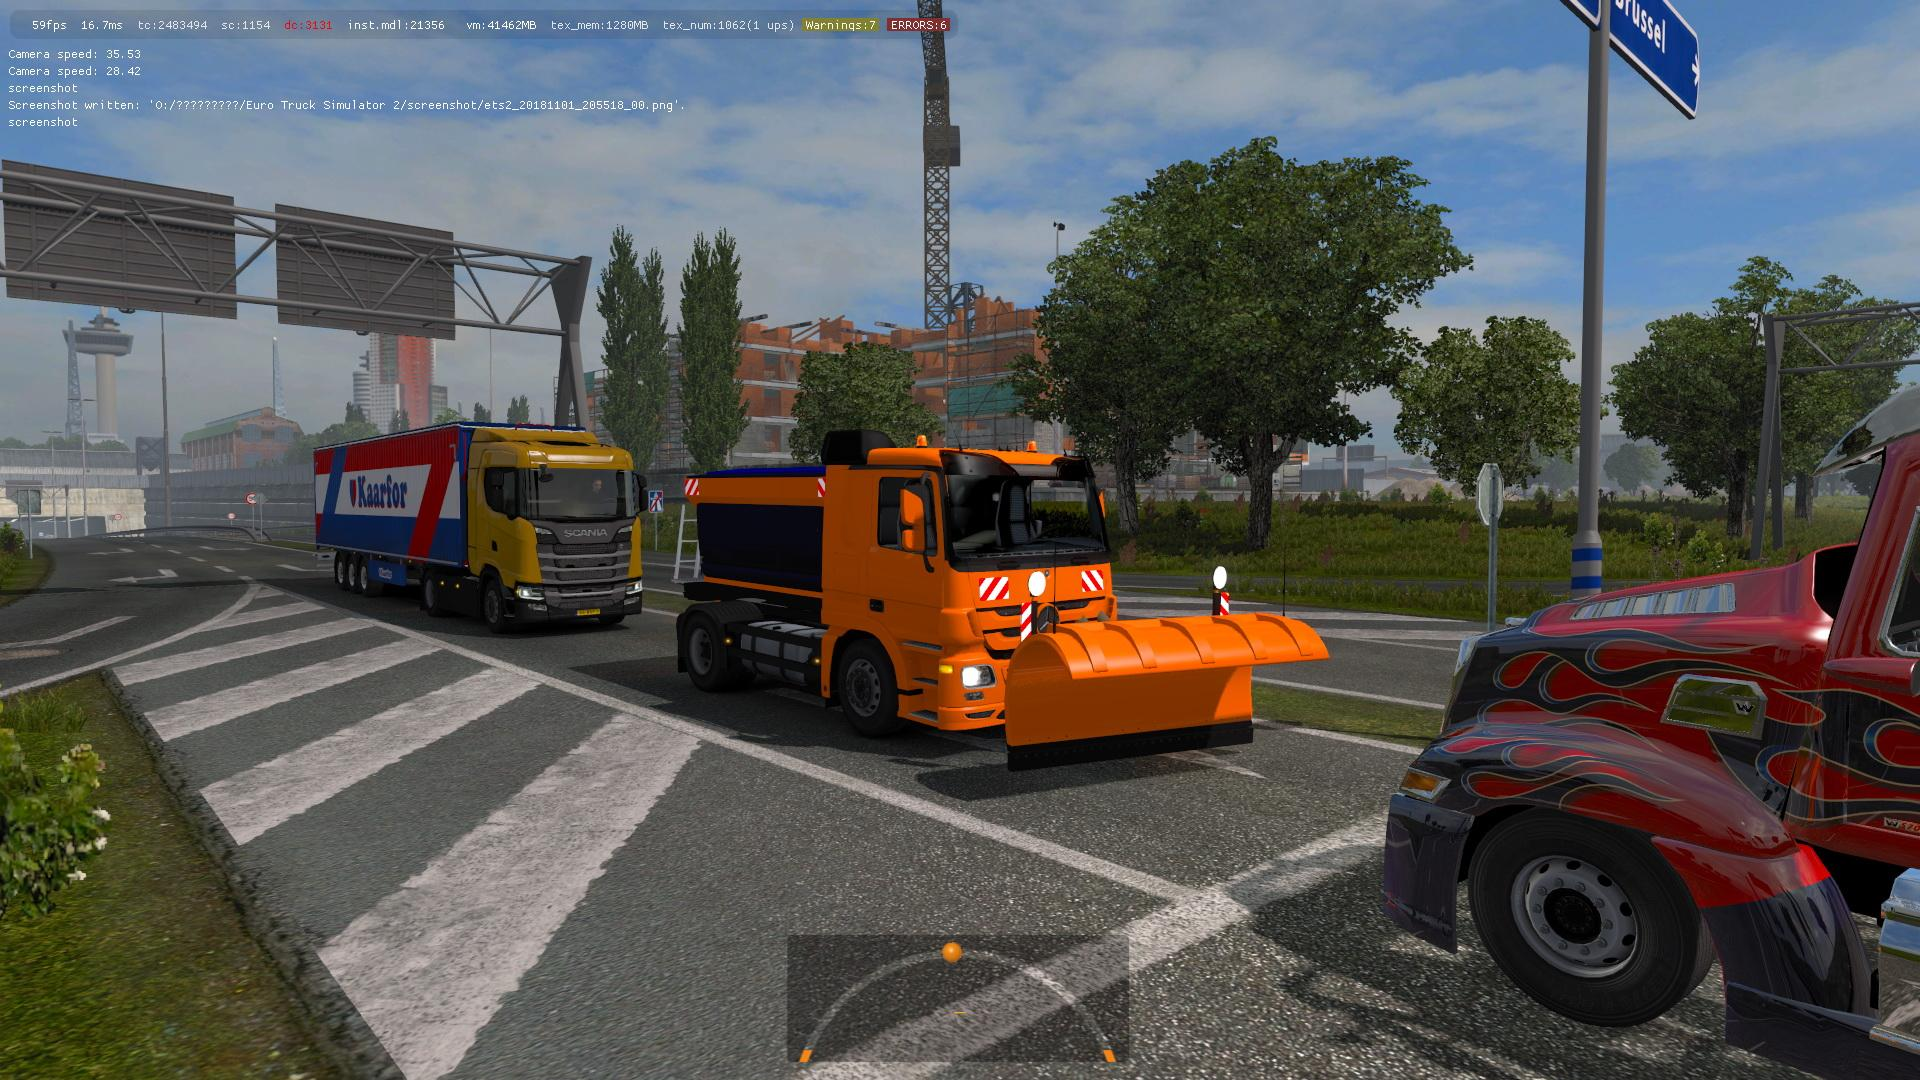 AI Winterdienst by Henki73 v1.2